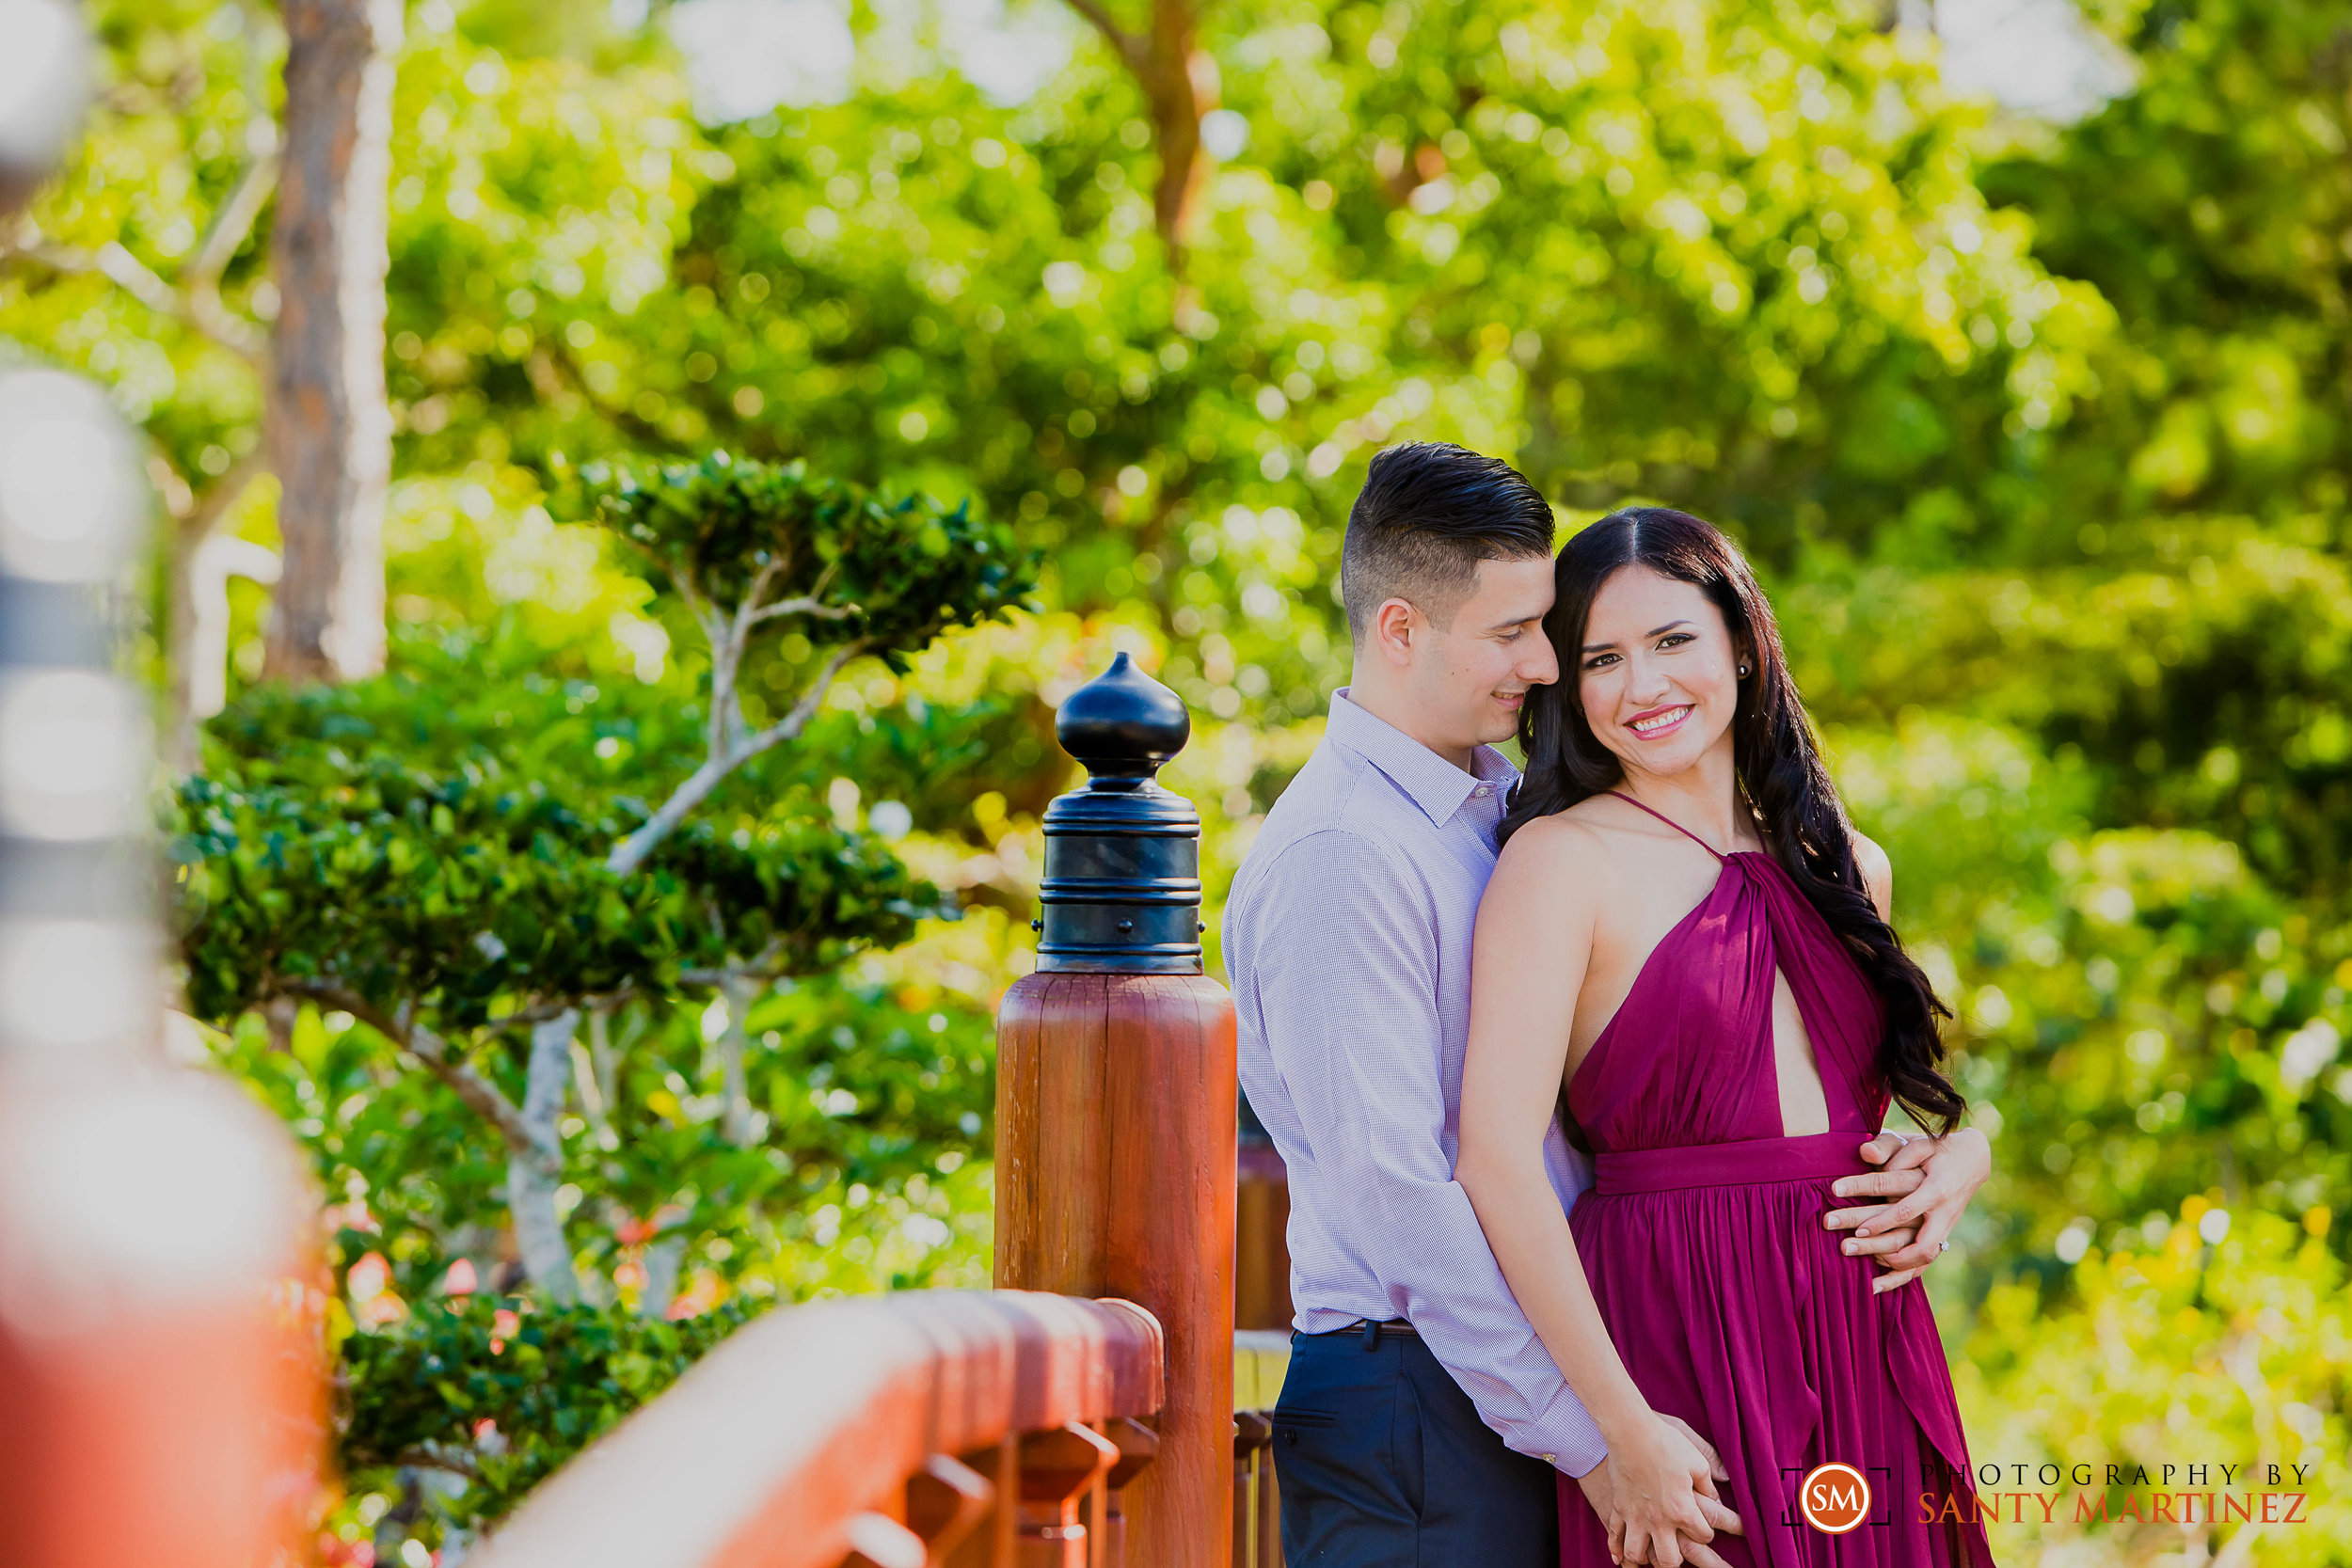 Morikami Engagement Session - Wedding Photographers - Santy Martinez.jpg